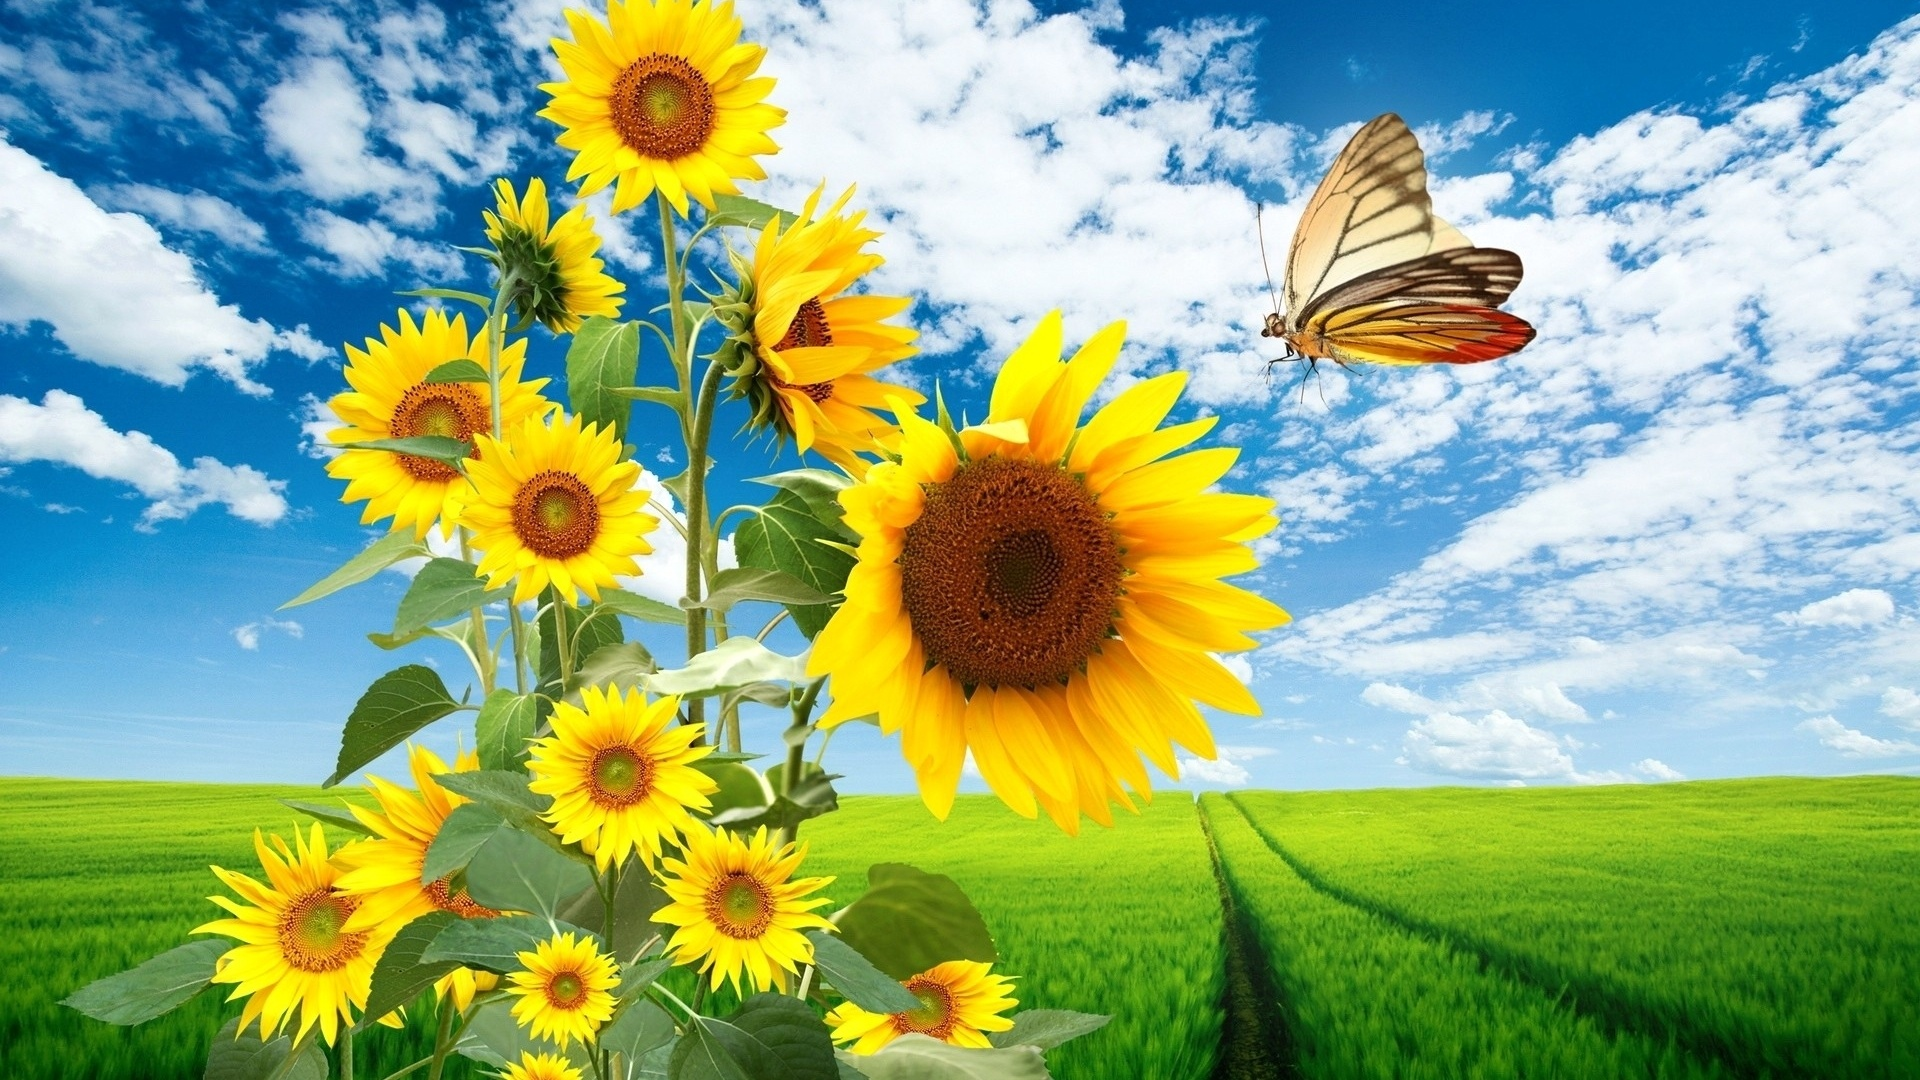 1920x1080 Sun Flowers Butterfly & Nature